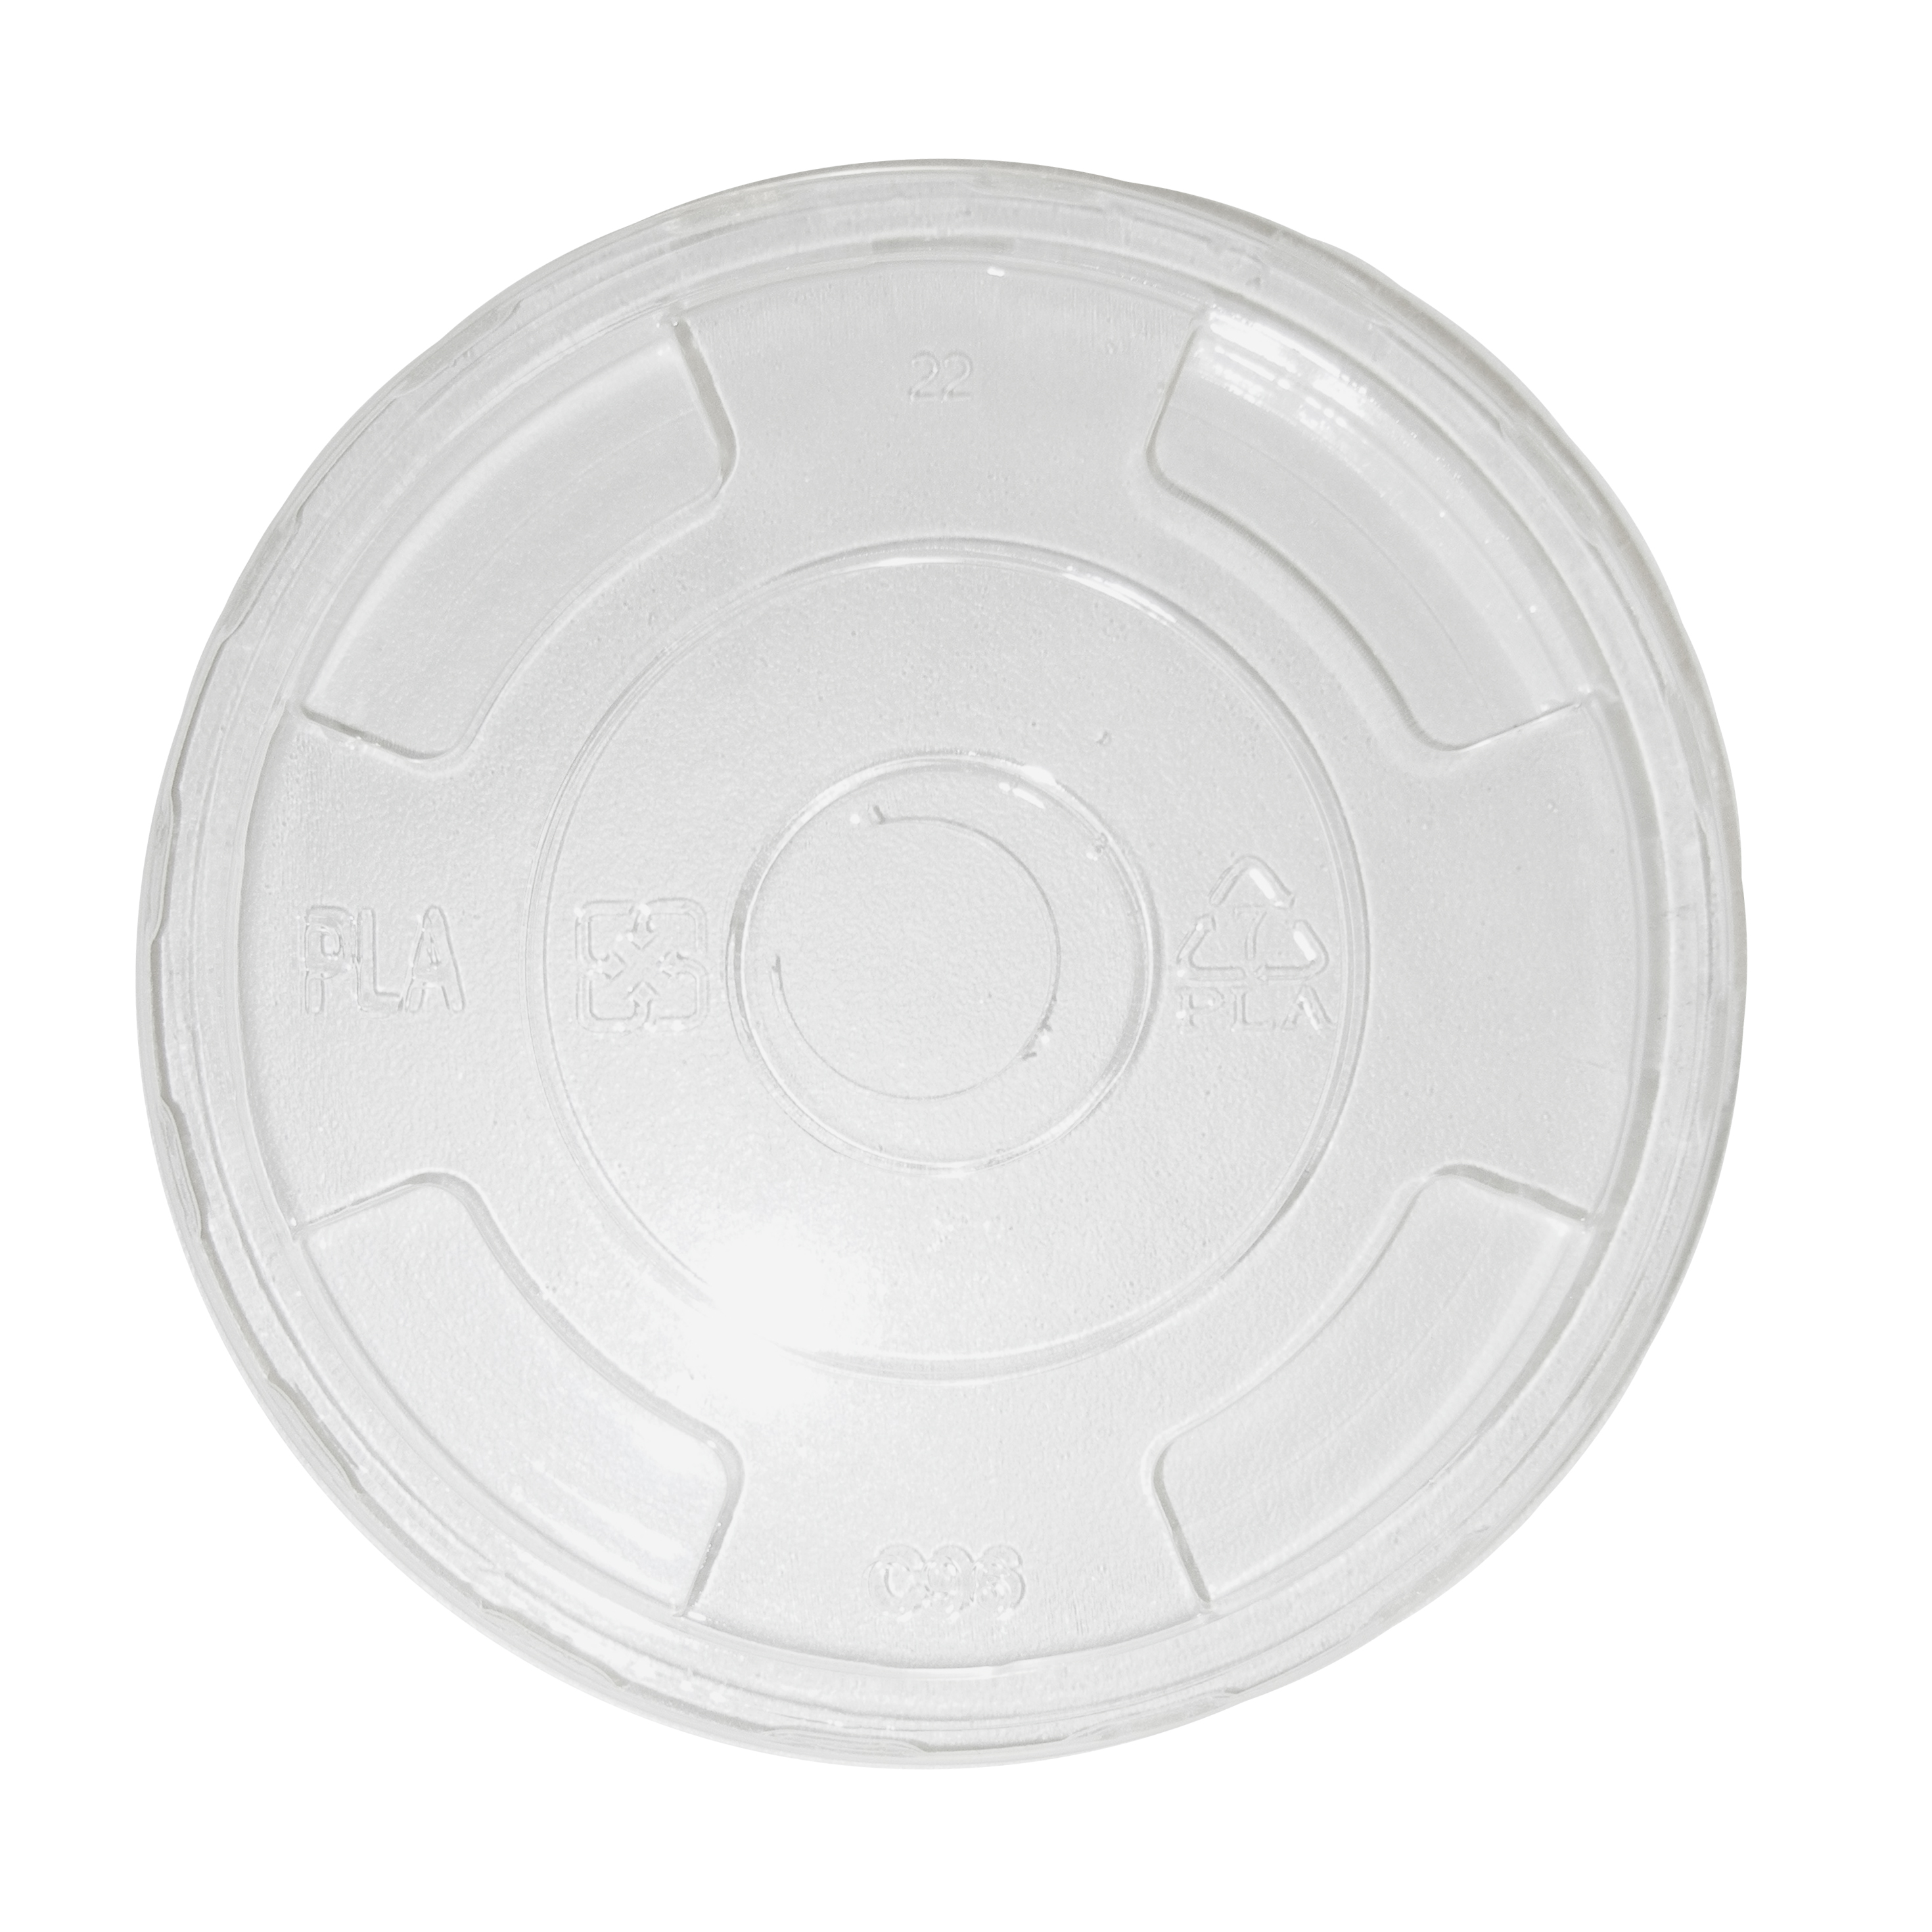 Lid PLA-9Q-24 oz cold  cup,straw hole, clear,